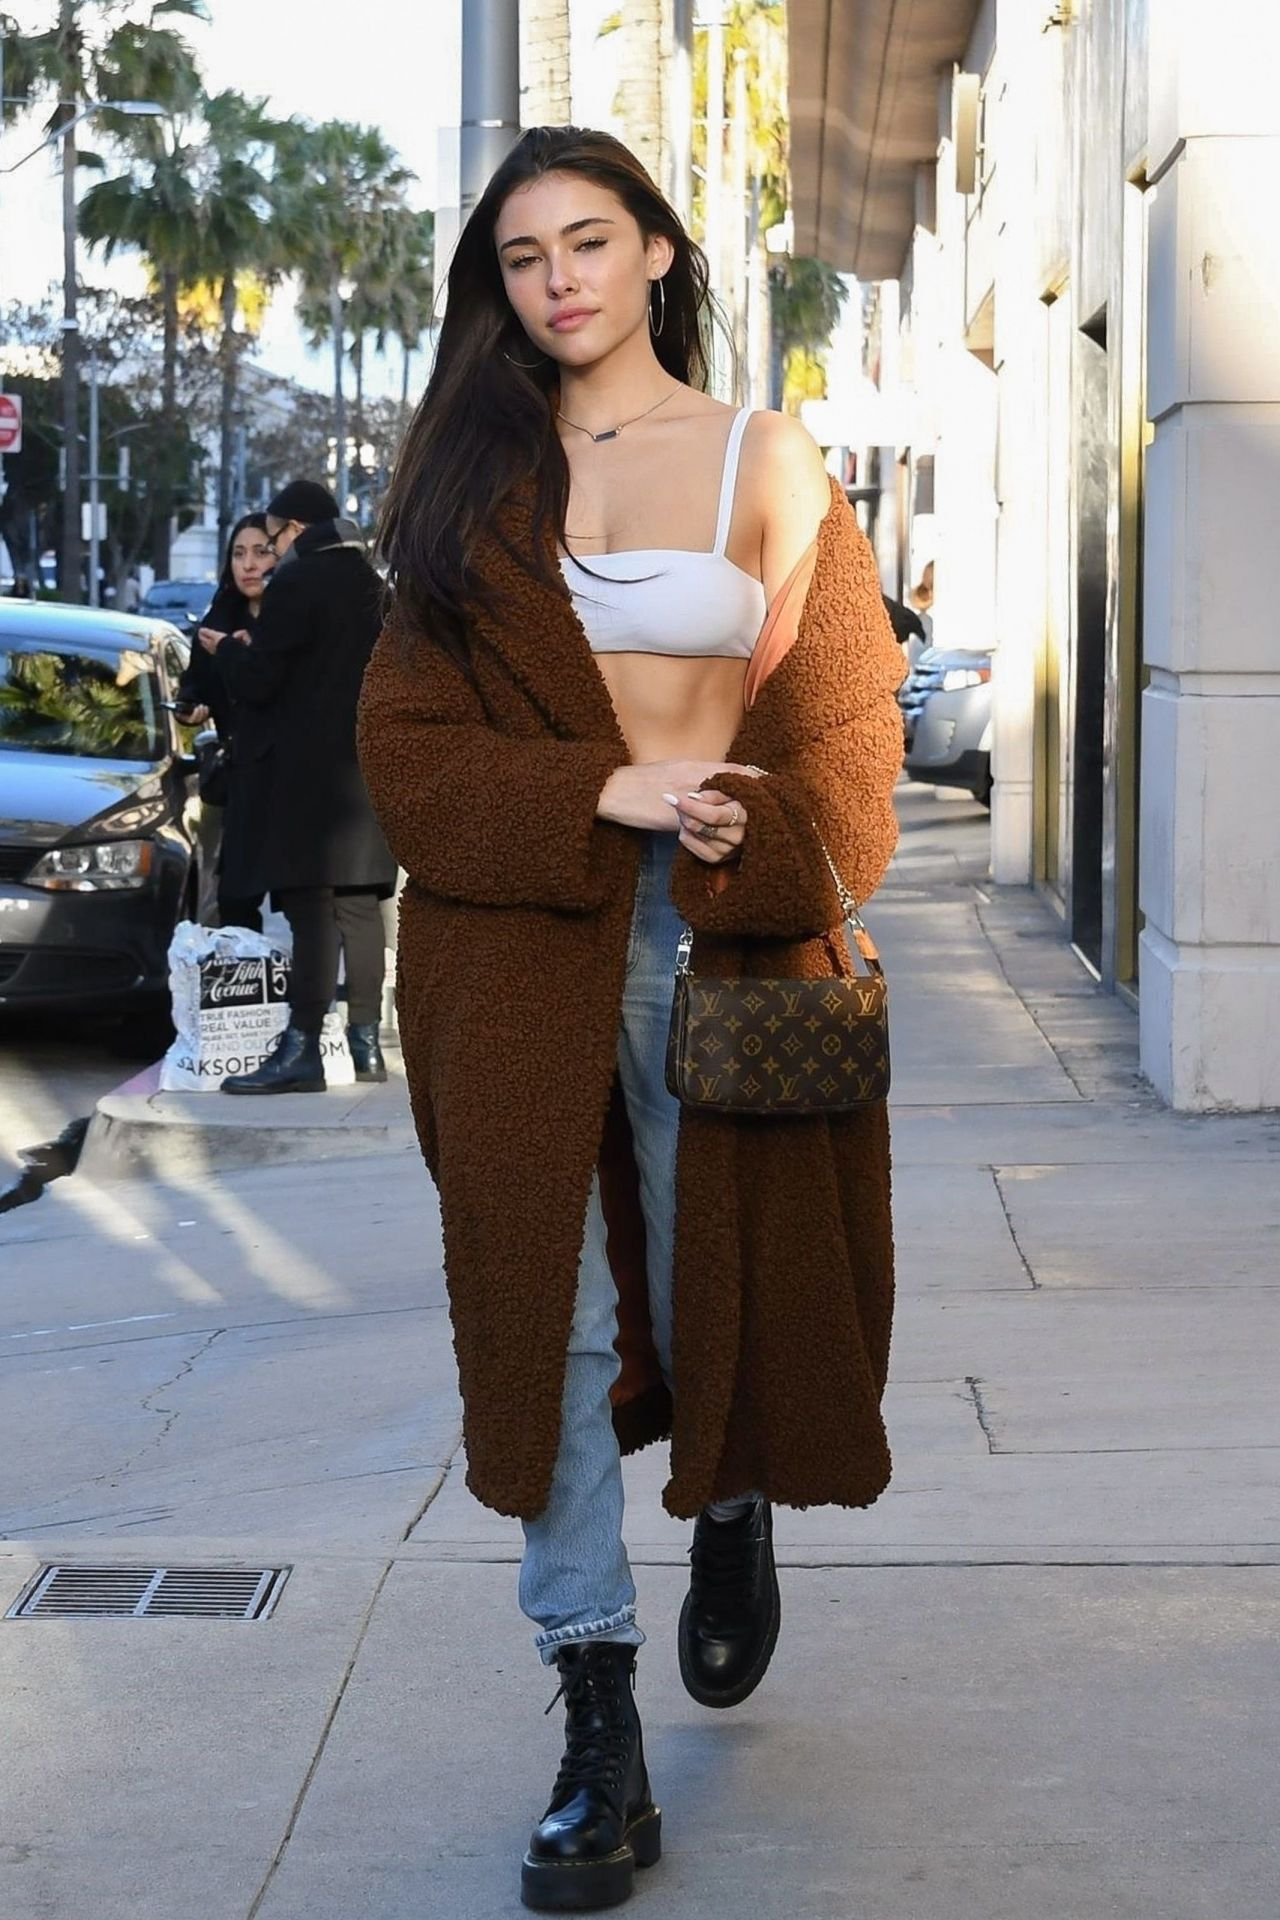 Madison Beer Shopping On Rodeo Drive 02 11 2019